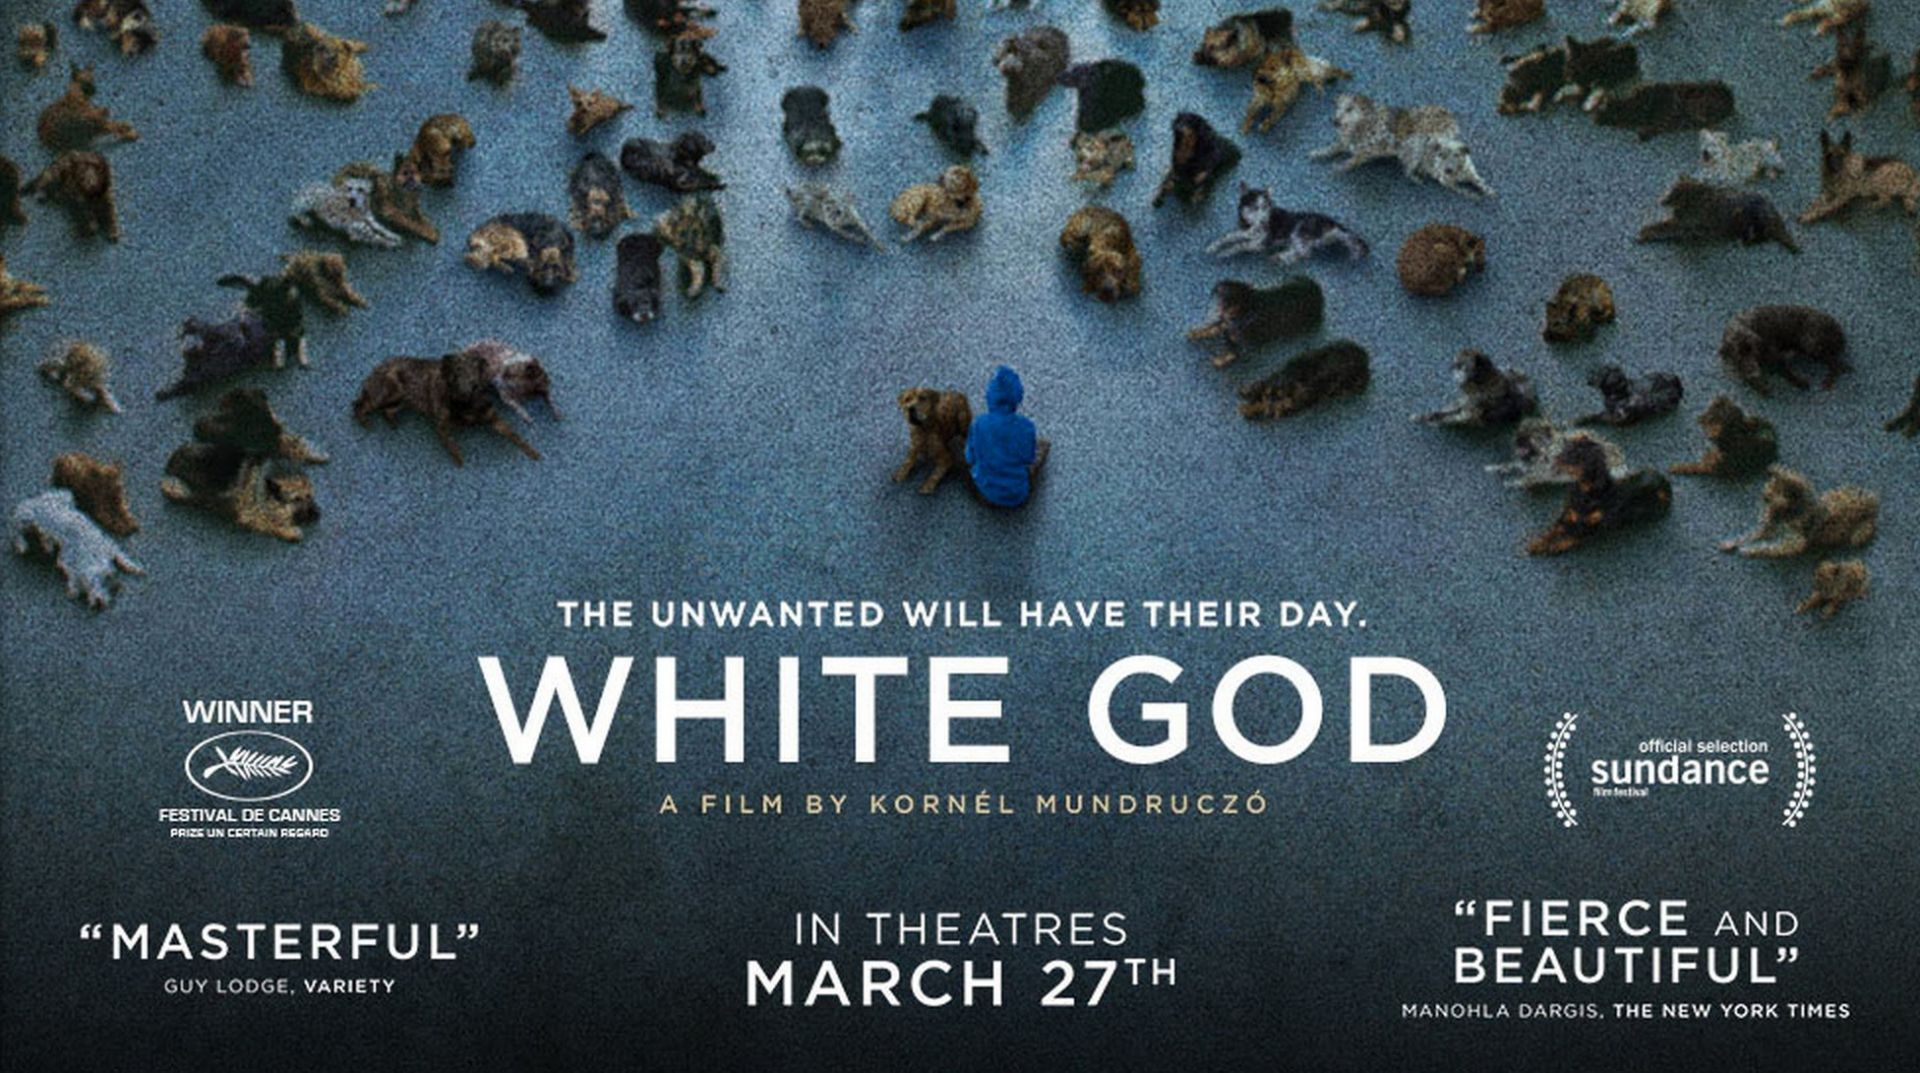 2014 White God movie poster | Home Theater Forum